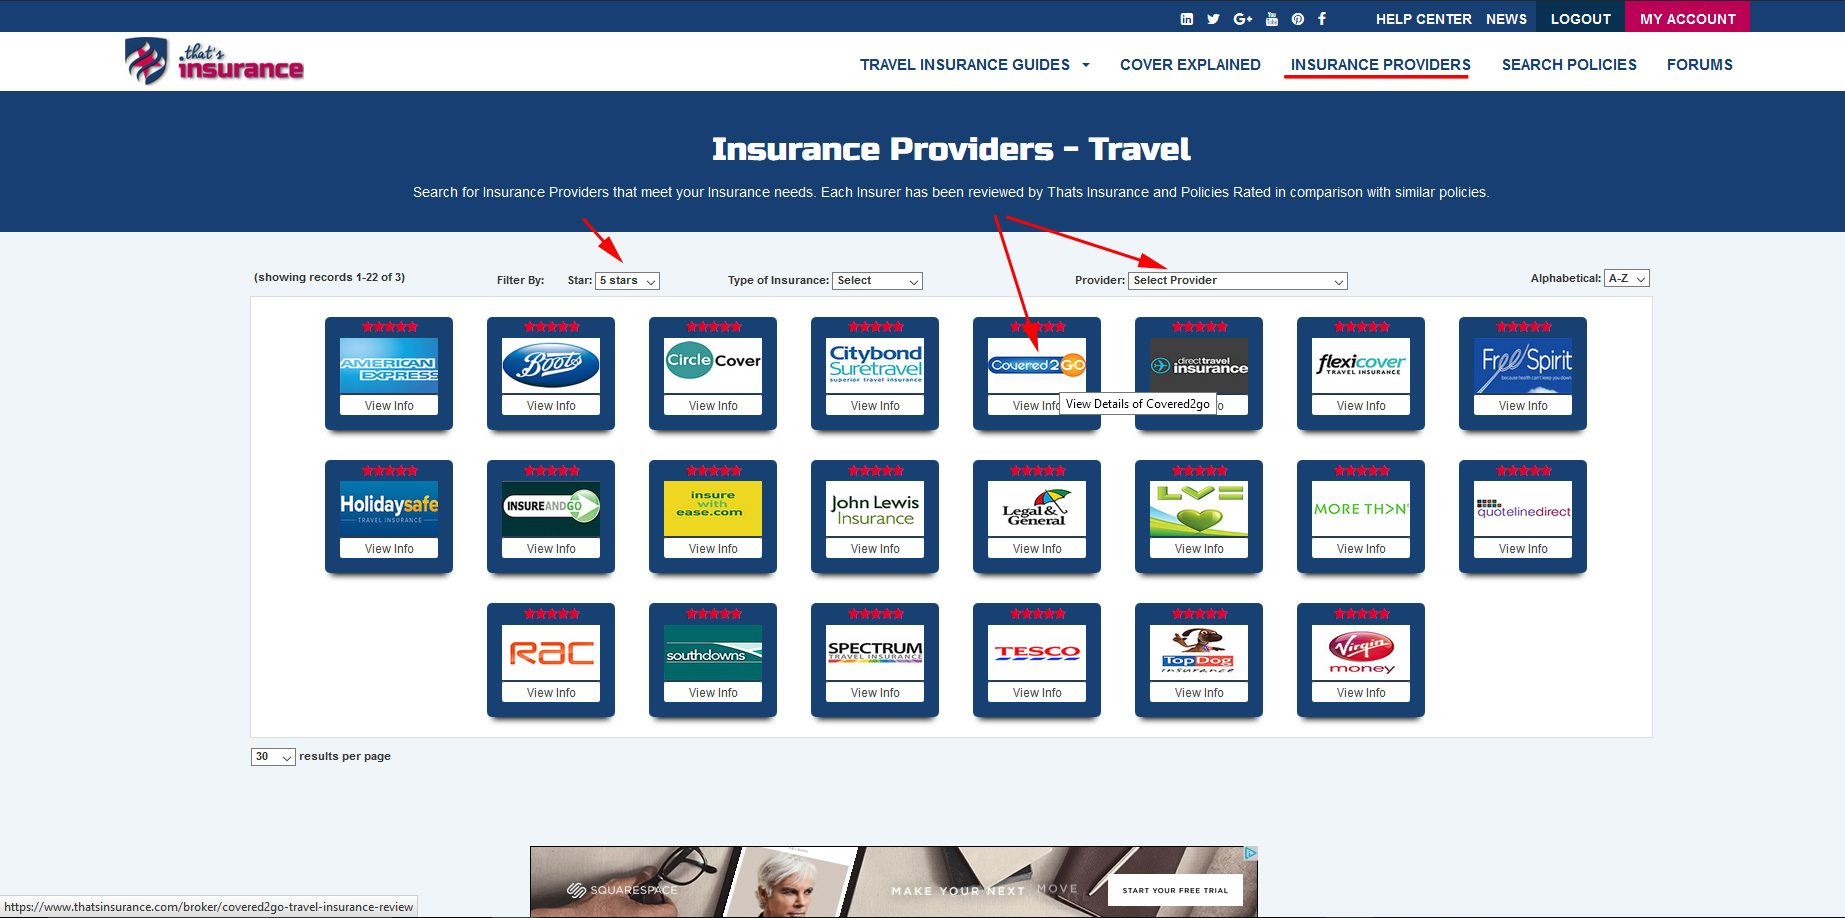 Insurance Provider Search Page